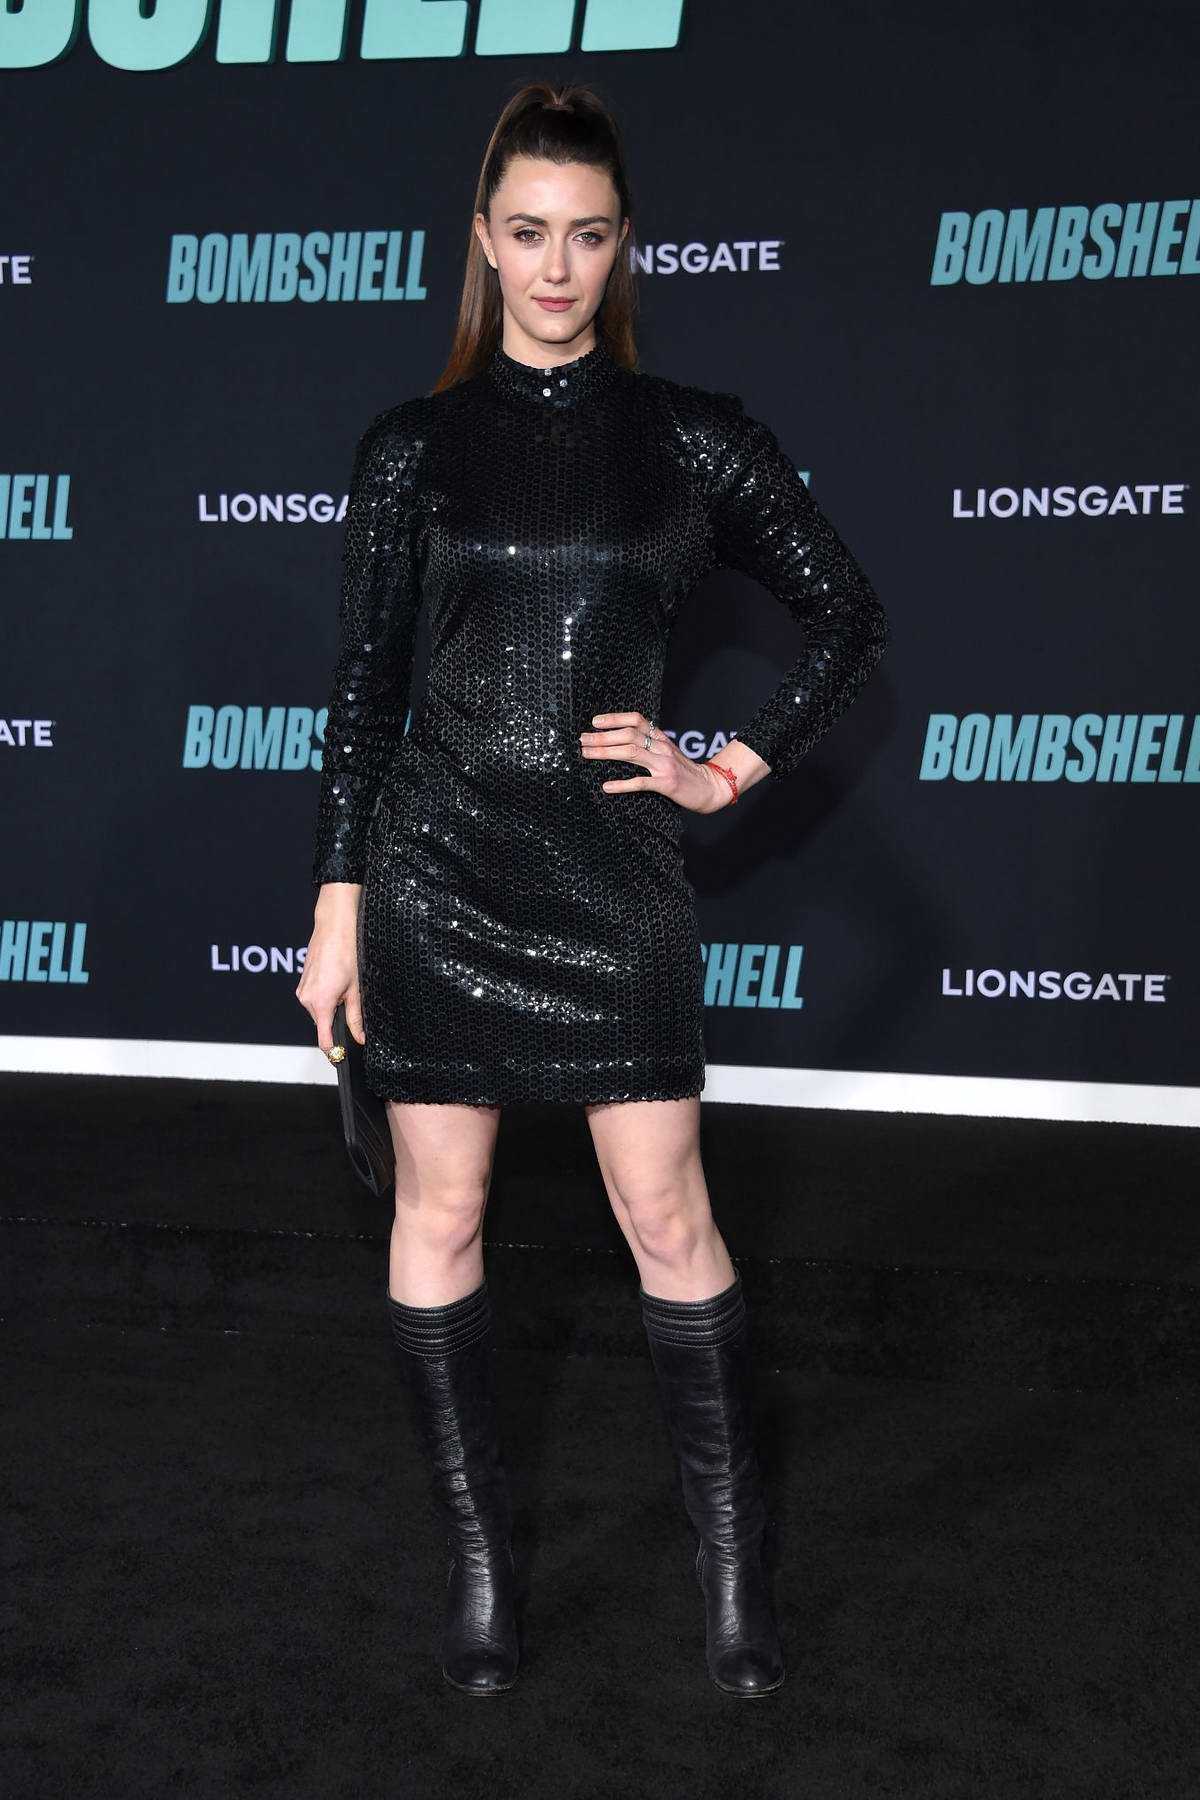 Madeline Zima attends a special screening of Bombshell in Westwood, California